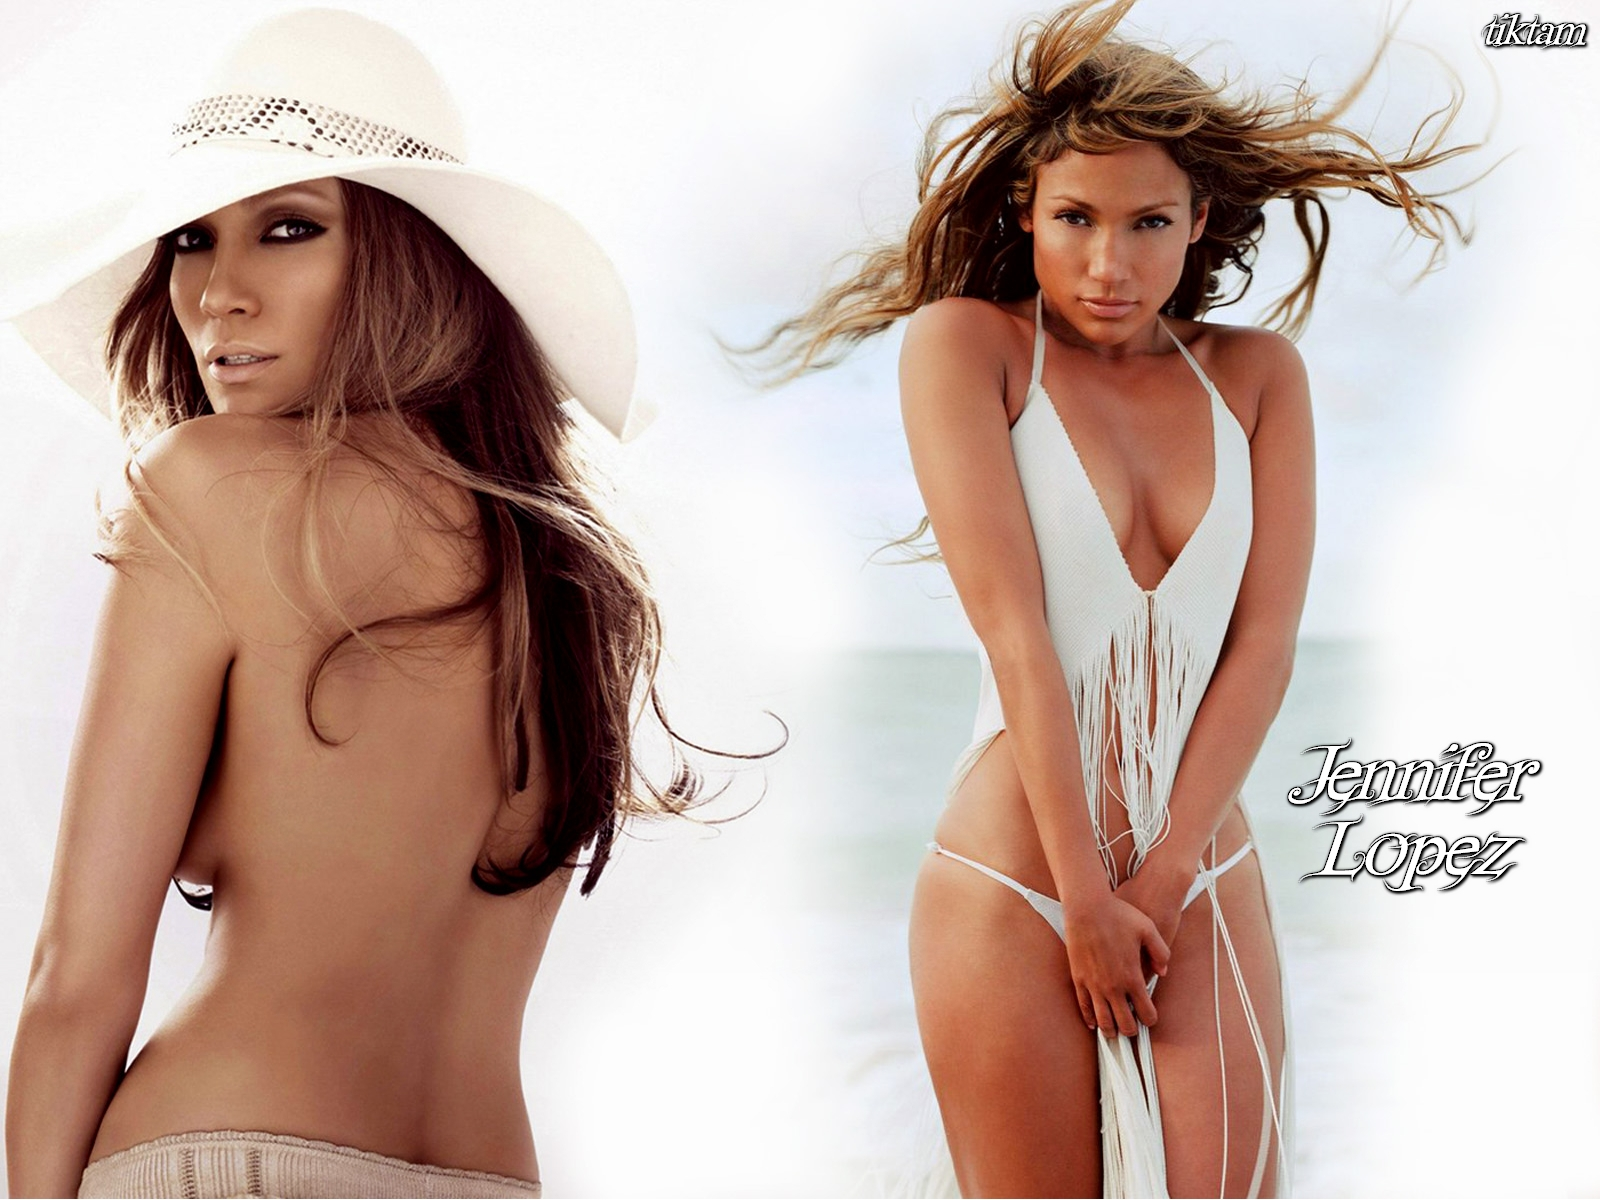 Jennifer Lopez - Jennifer Lopez Wallpaper (43913) - Fanpop